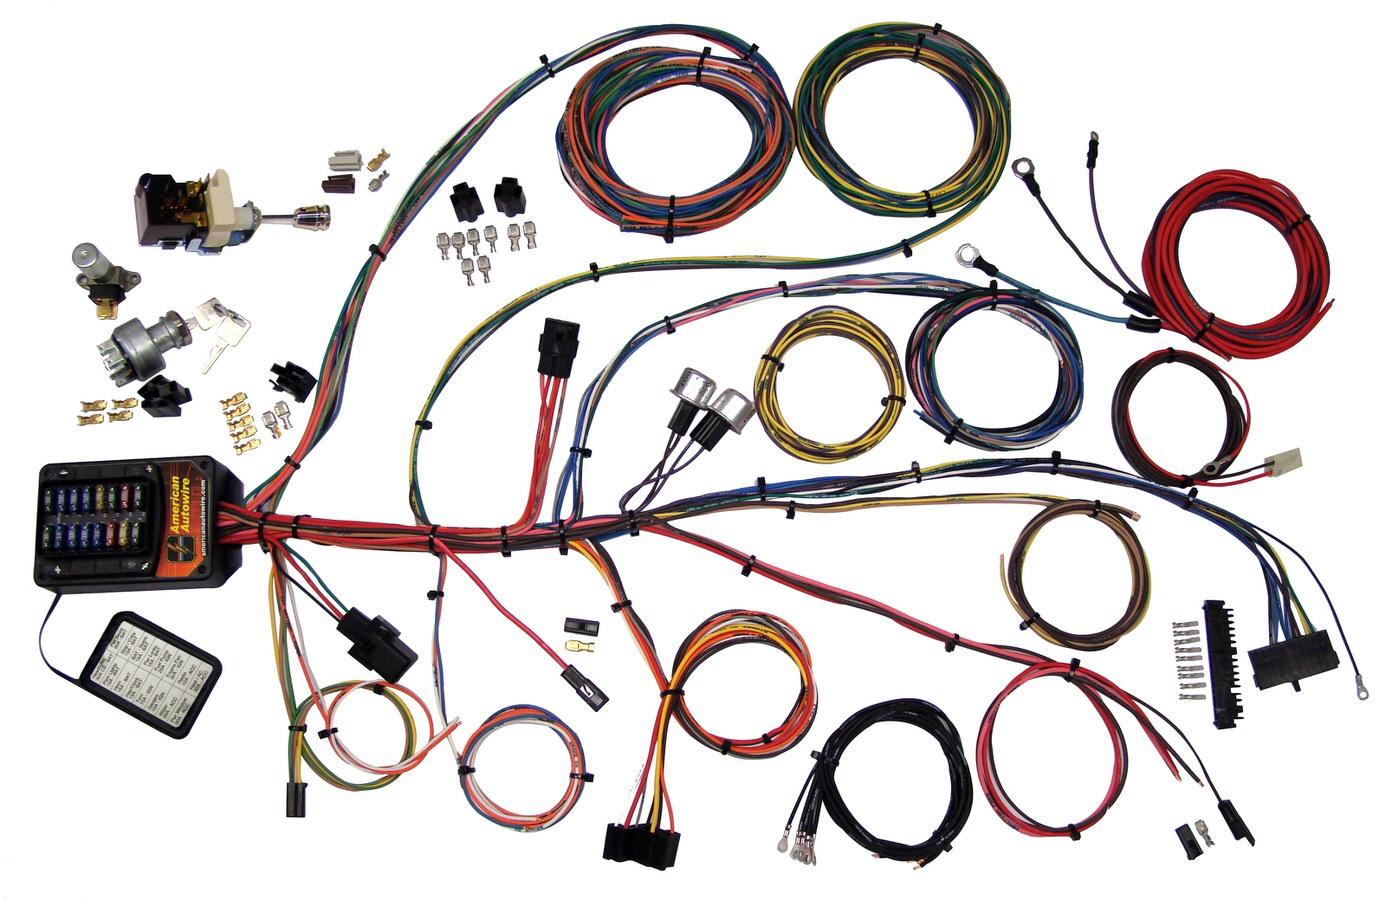 hight resolution of new builder 19 series wiring kit complete car wiring harness